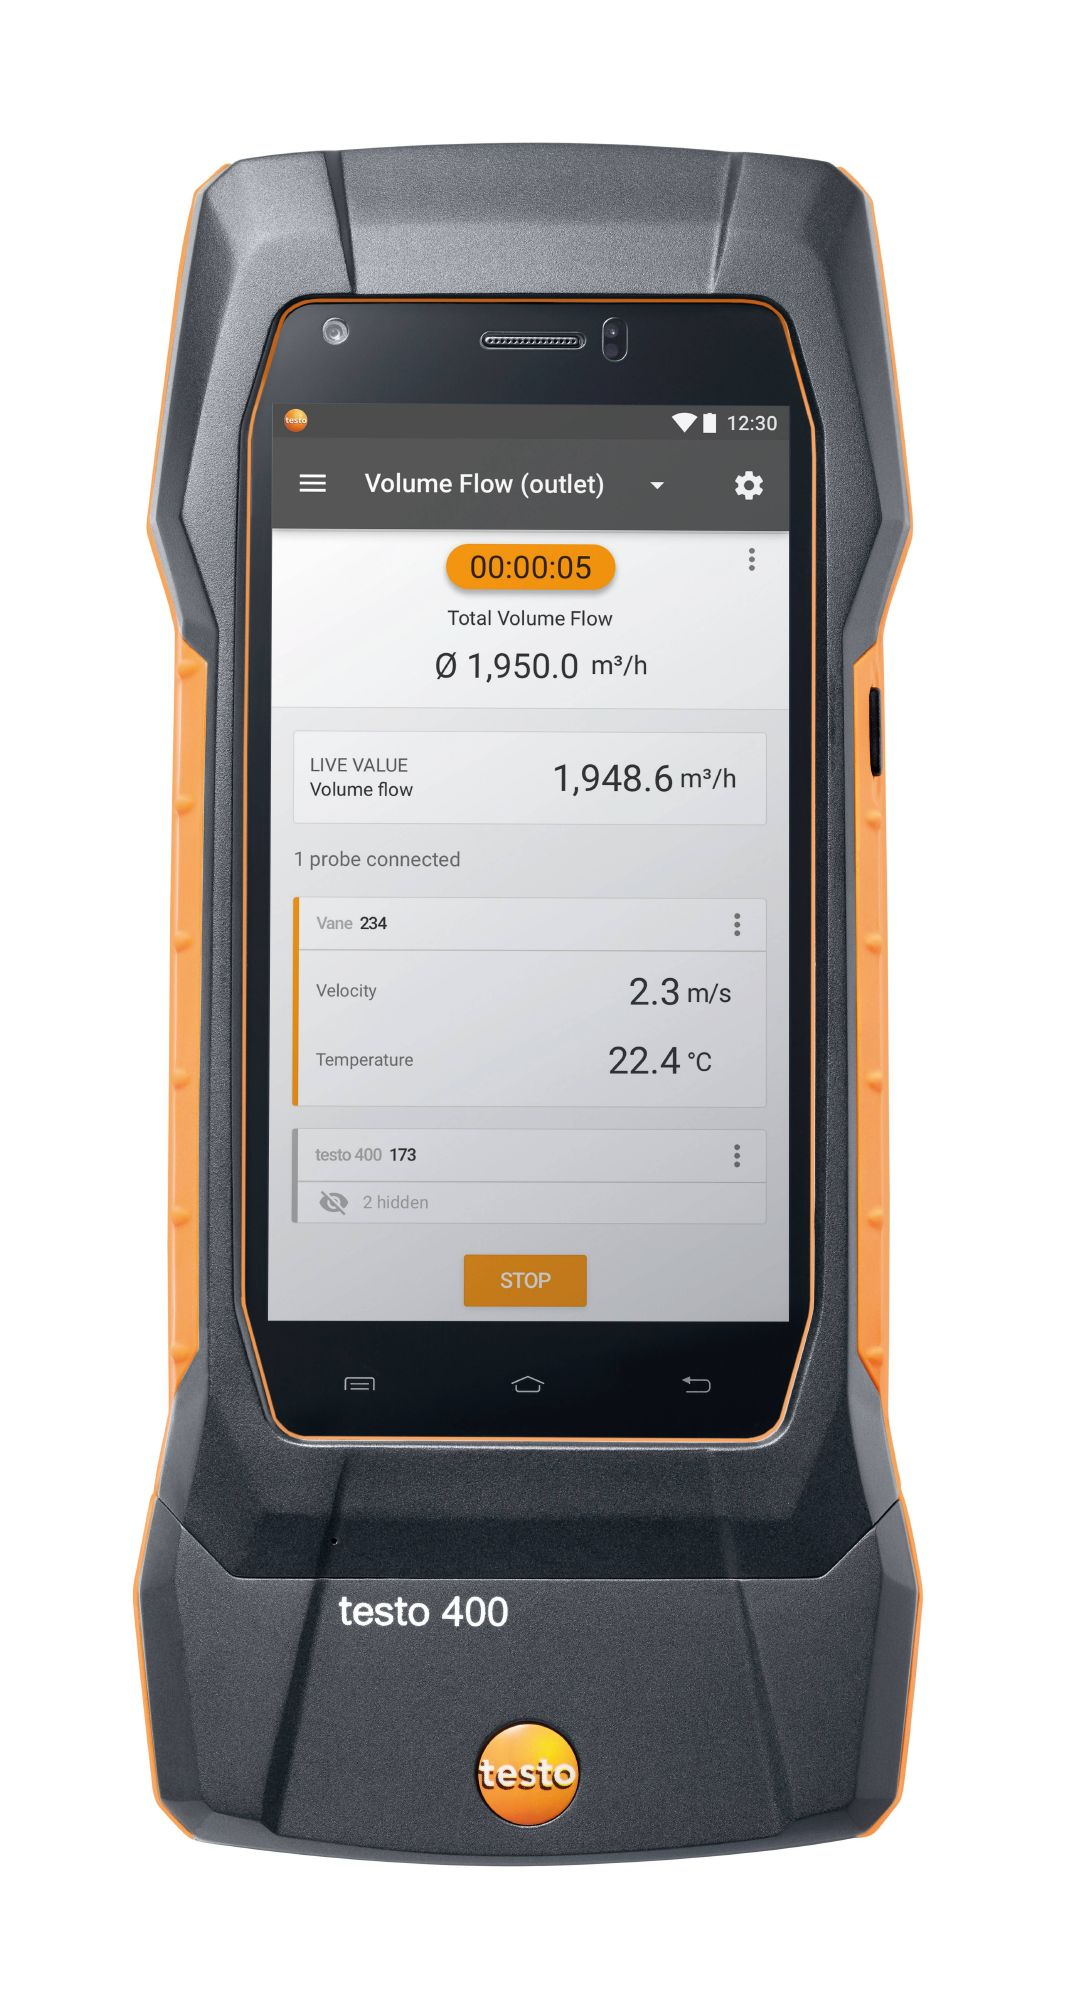 testo 400 Universal IAQ instrument